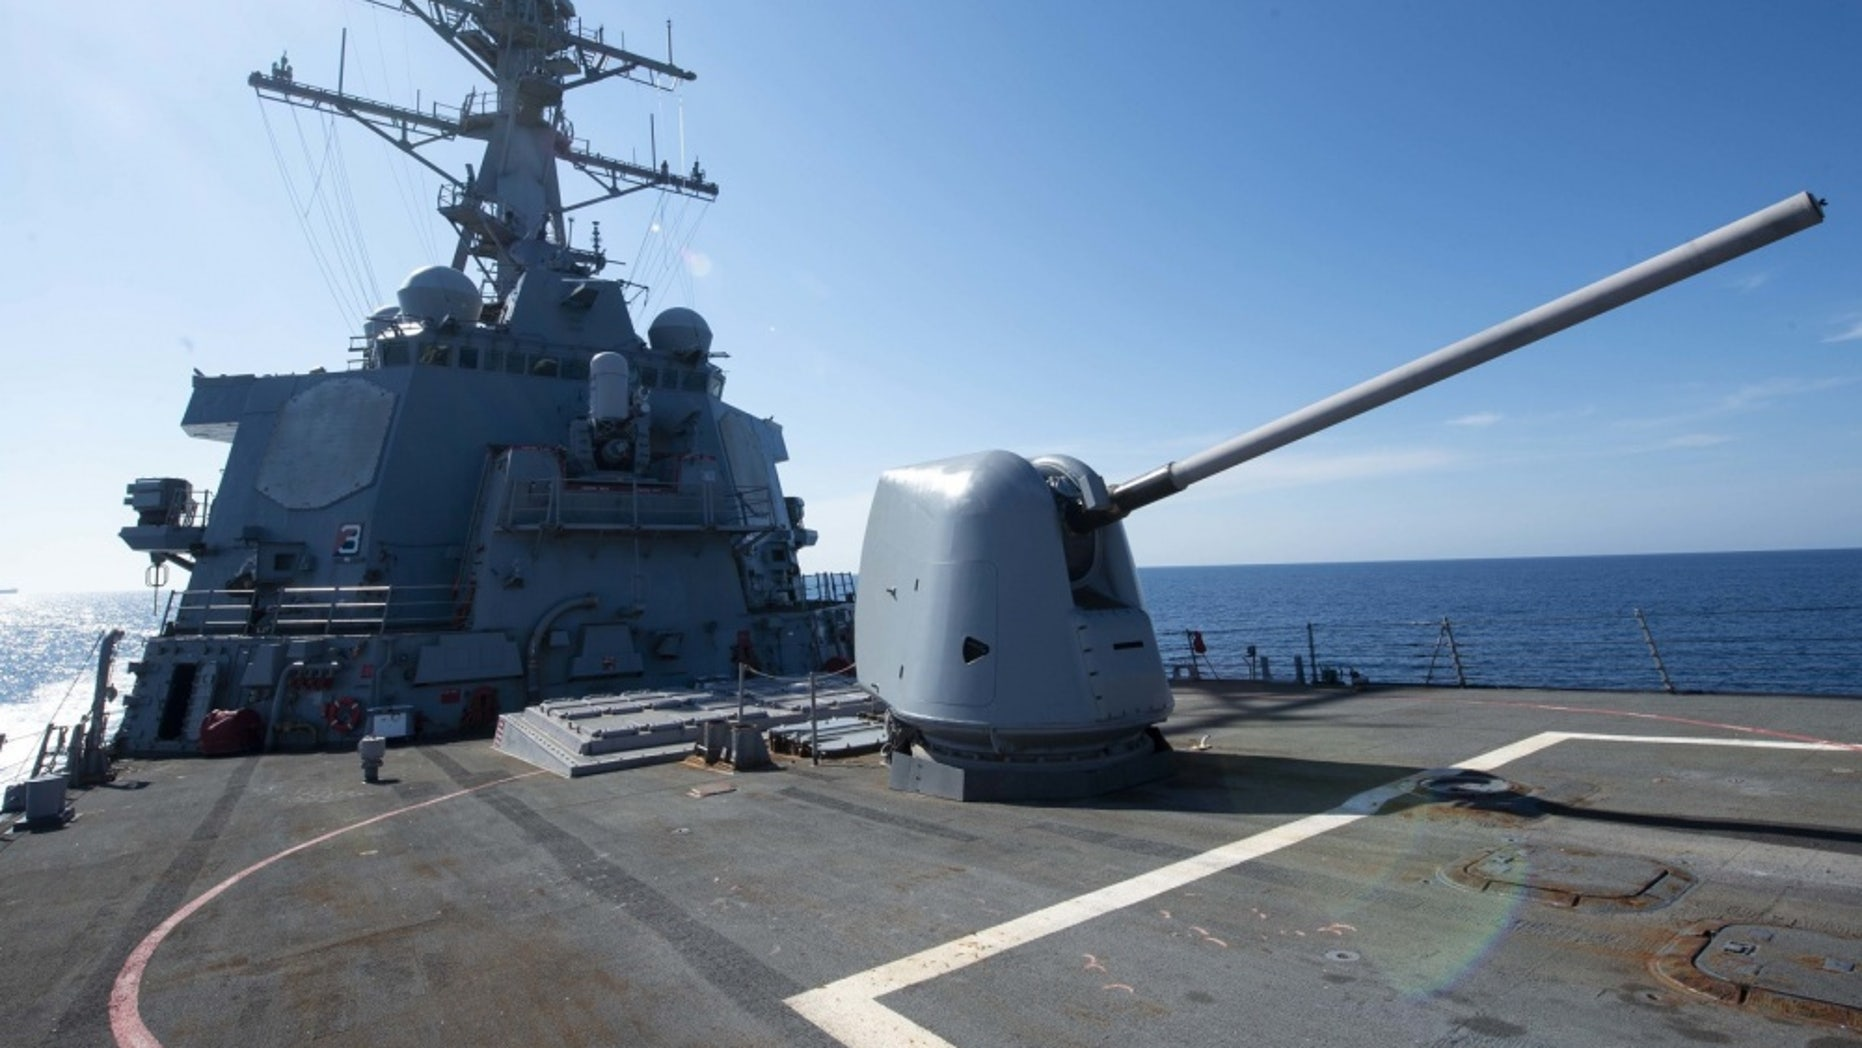 File photo - The Arleigh Burke-class guided-missile destroyer USS Arleigh Burke (DDG 51) transits the Mediterranean Sea Sept. 22, 2018.